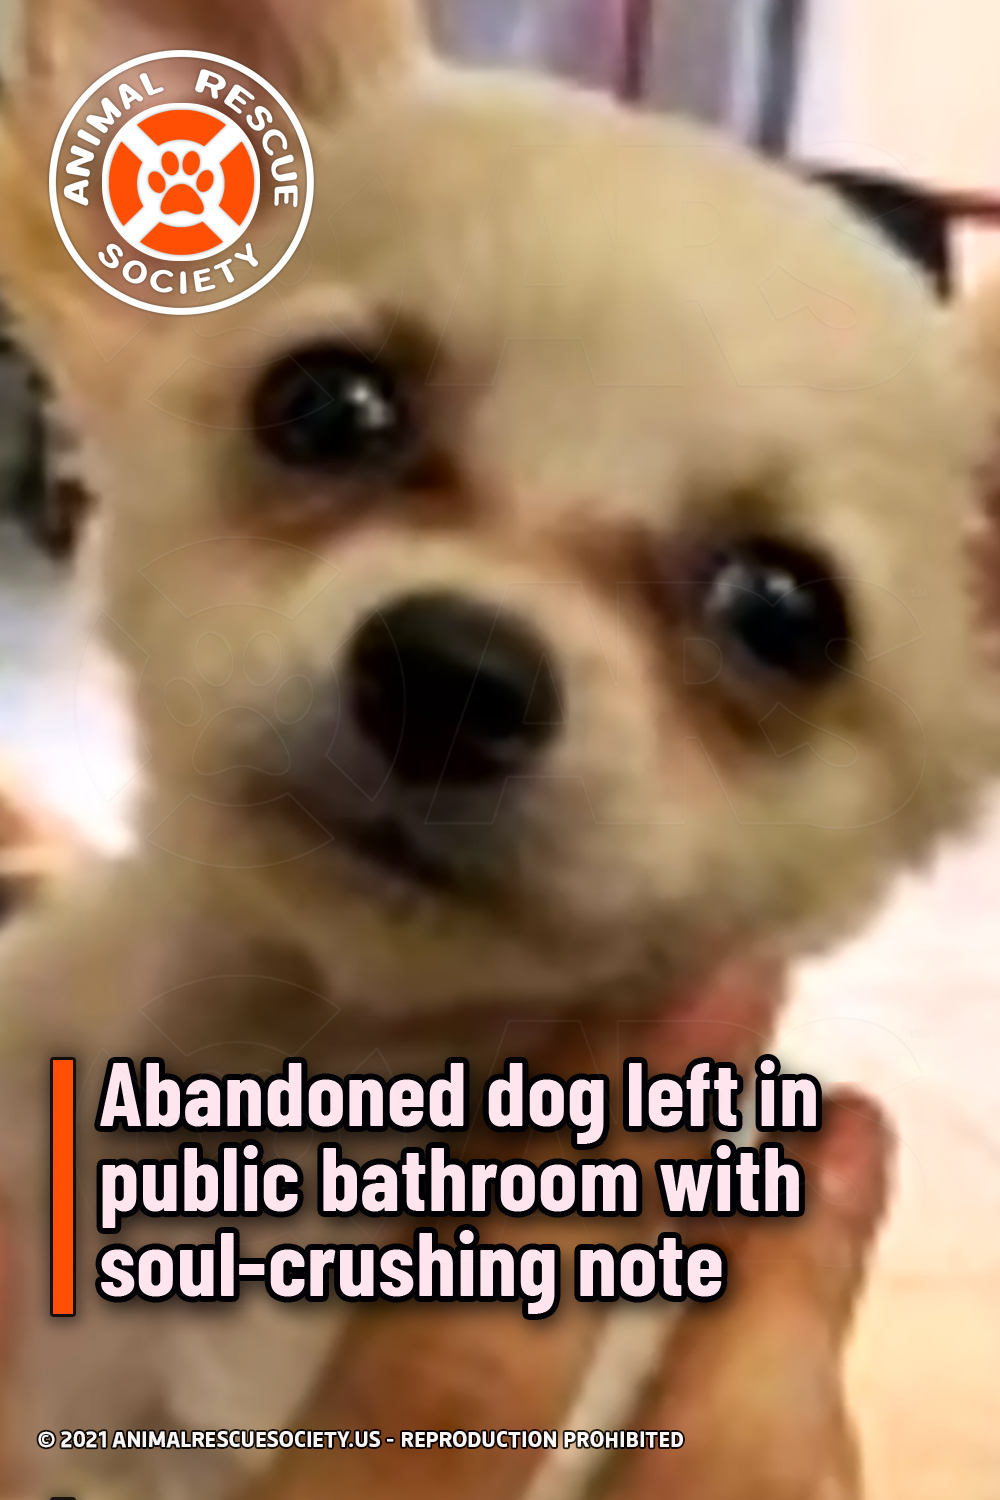 Abandoned dog left in public bathroom with soul-crushing note